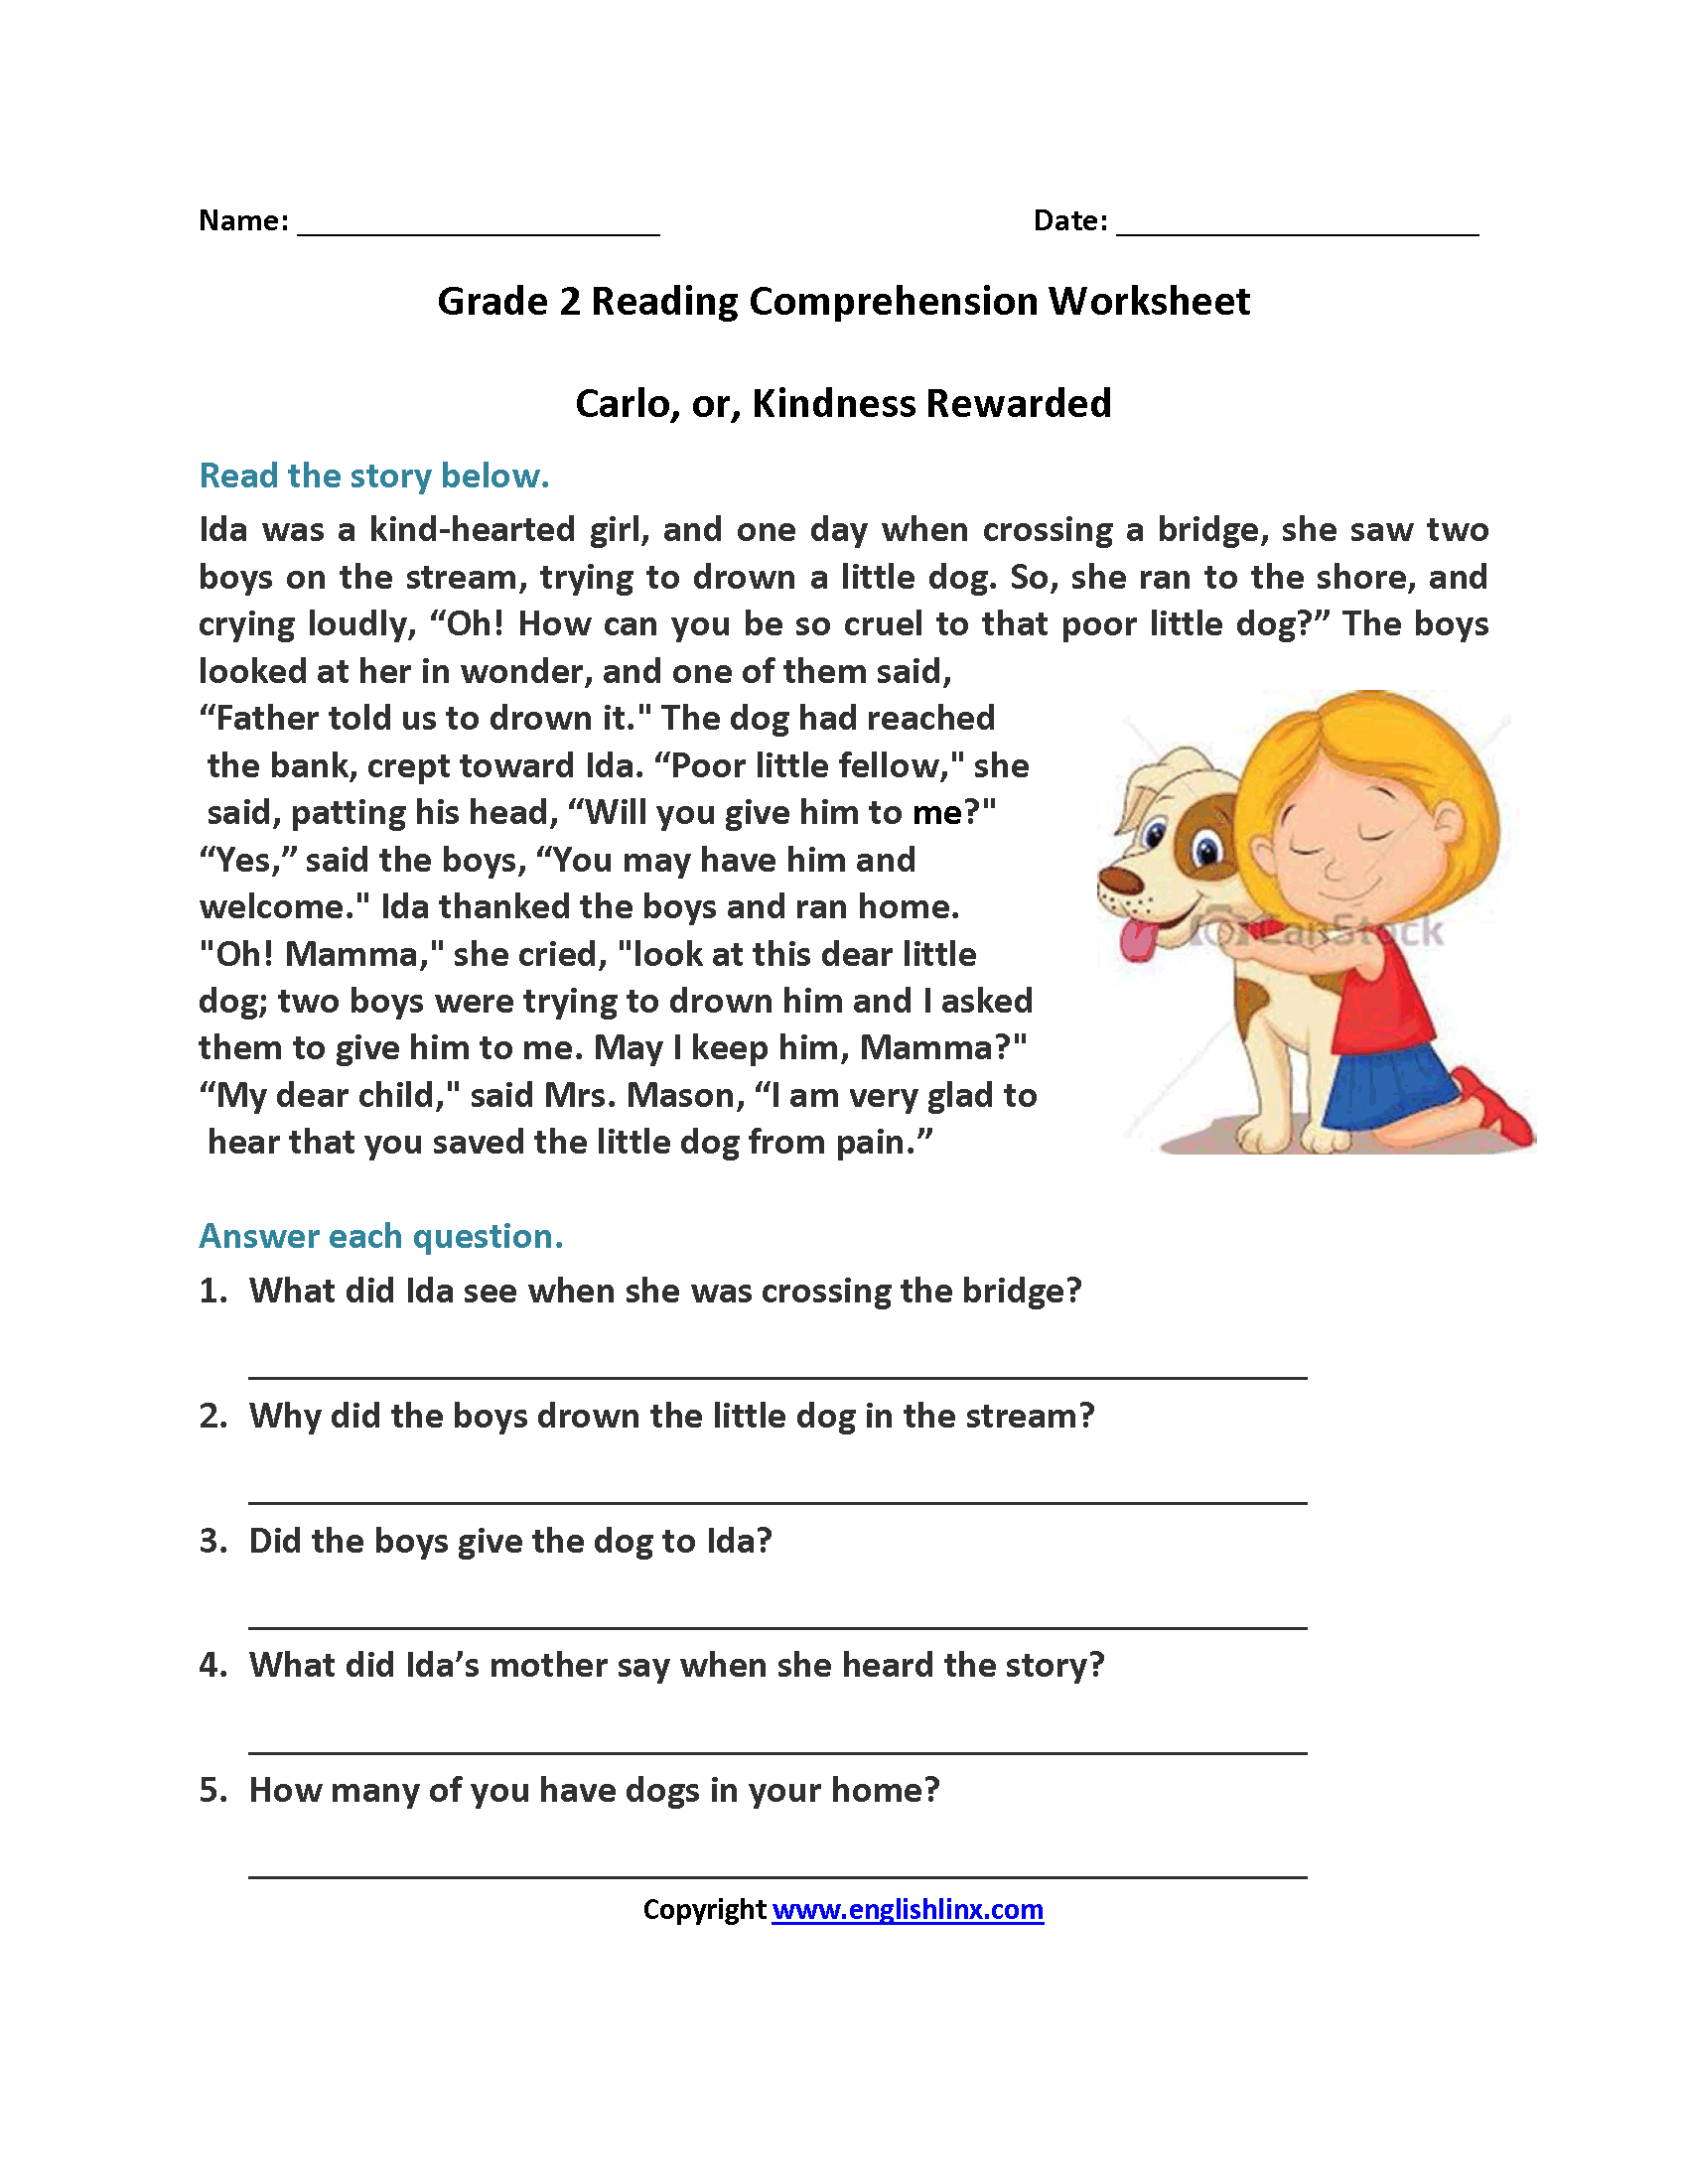 Carlo Or Kindness Rewarded Second Grade Reading Worksheets | Reading | Second Grade Reading Comprehension Printable Worksheets